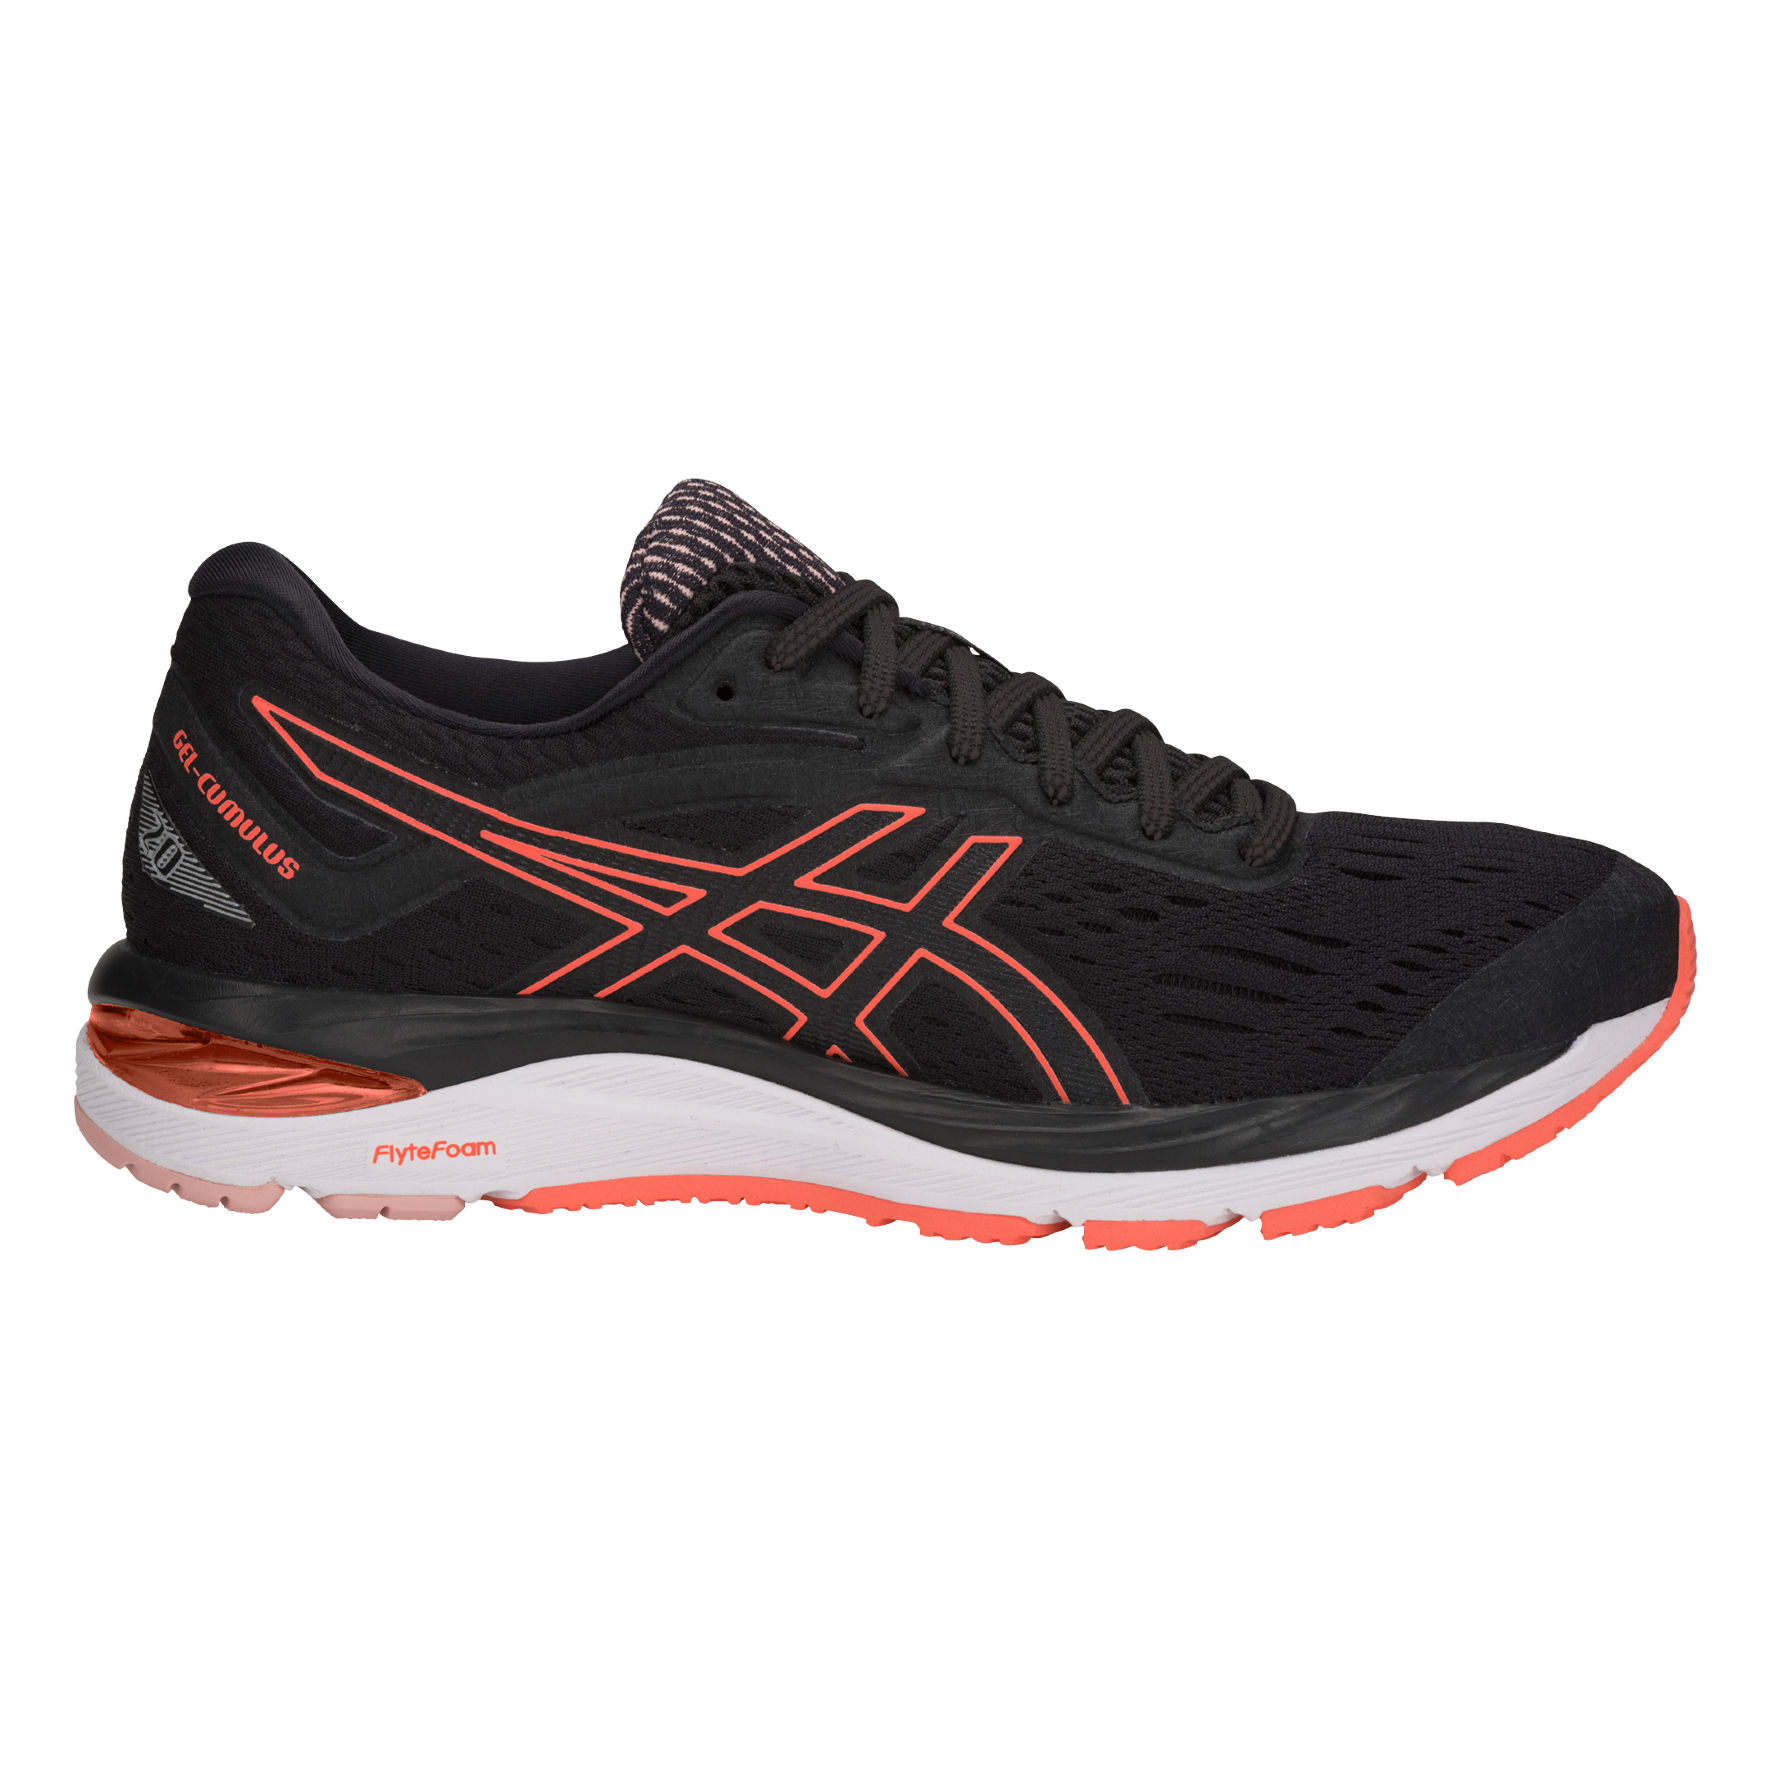 Asics Lady Gel Cumulus 20 in Schwarz Orange